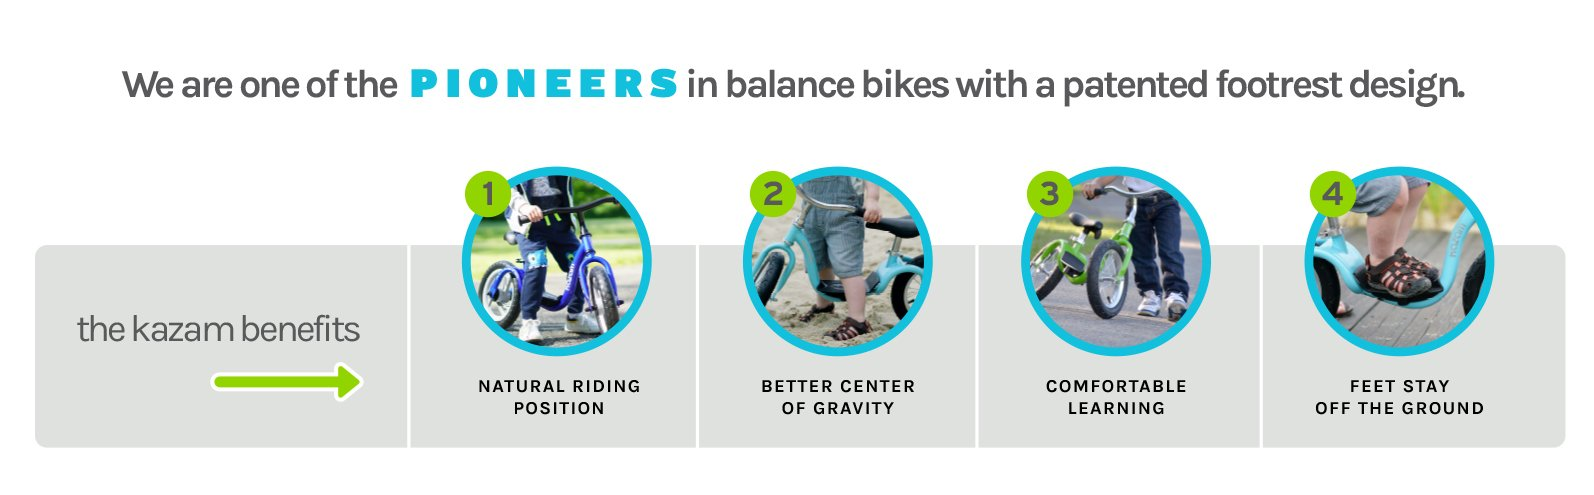 We are one of the PIONEERS in balance bikes with a patented footrest design. The Kazam Benefits - (1) Natural Riding Position (2) Better Center of Gravity (3) Comfortable Learning (4) Feet Stay off the Ground